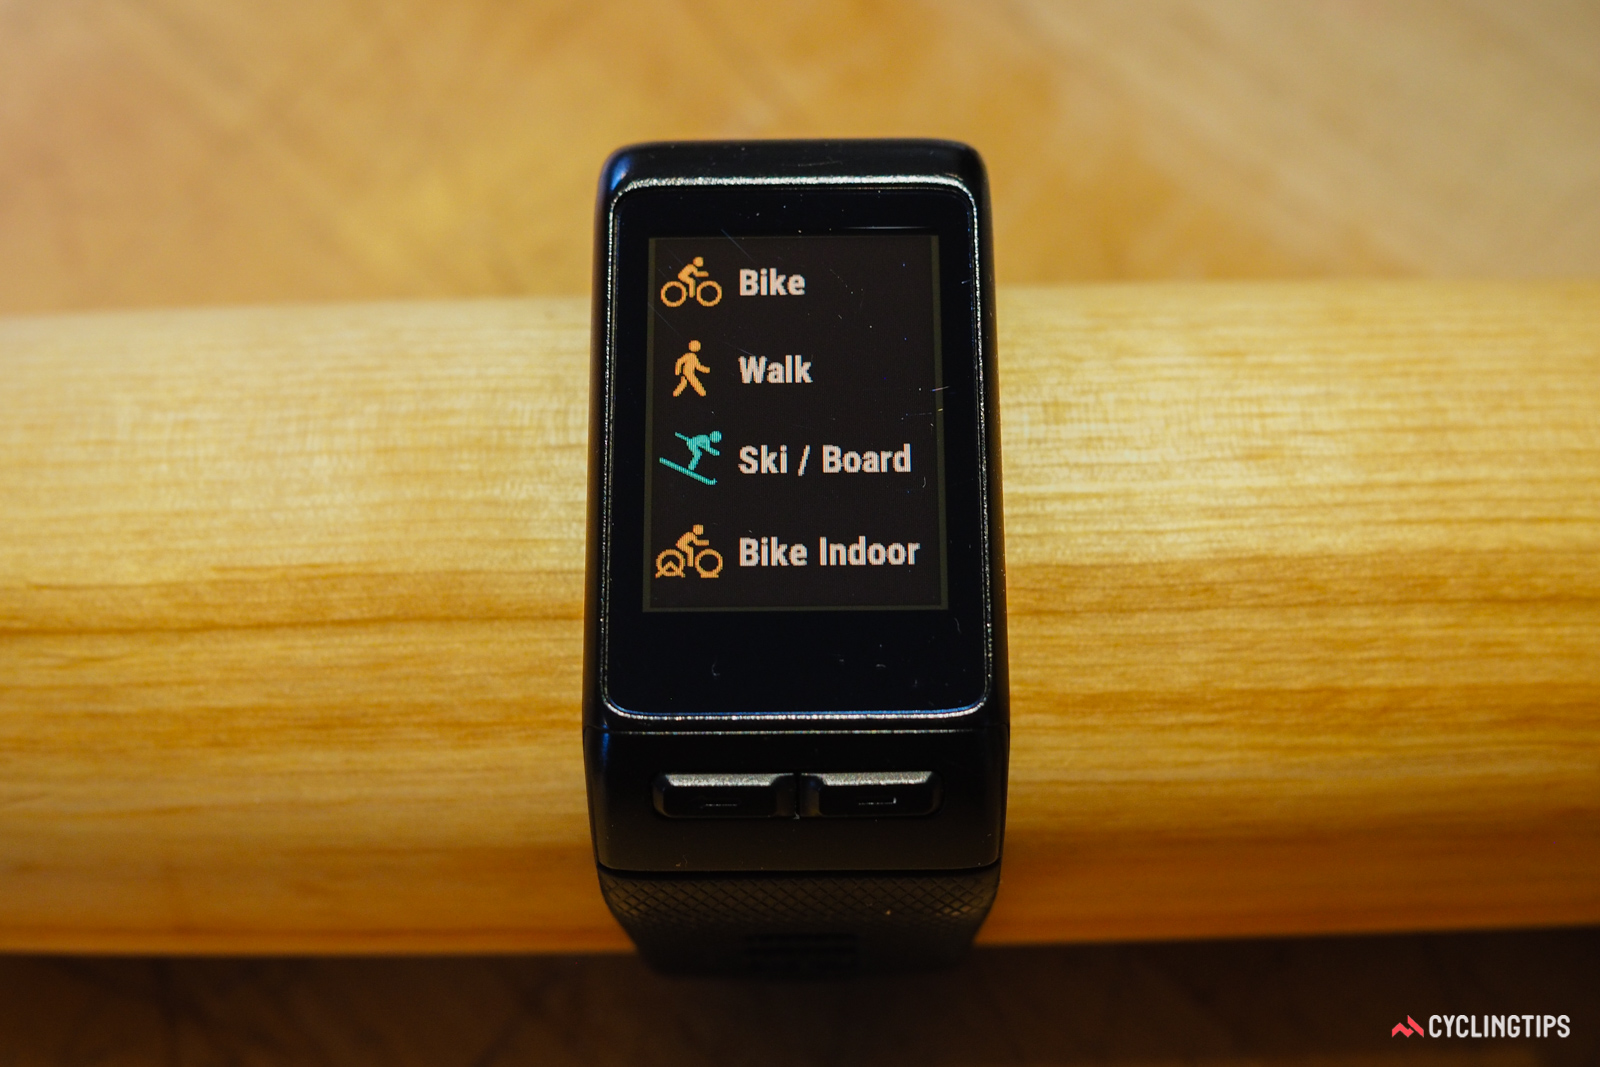 The list of compatible activities on the Garmin Vivoactive HR can be altered as needed. Not much of a hiker? Simply hide the option from the list.